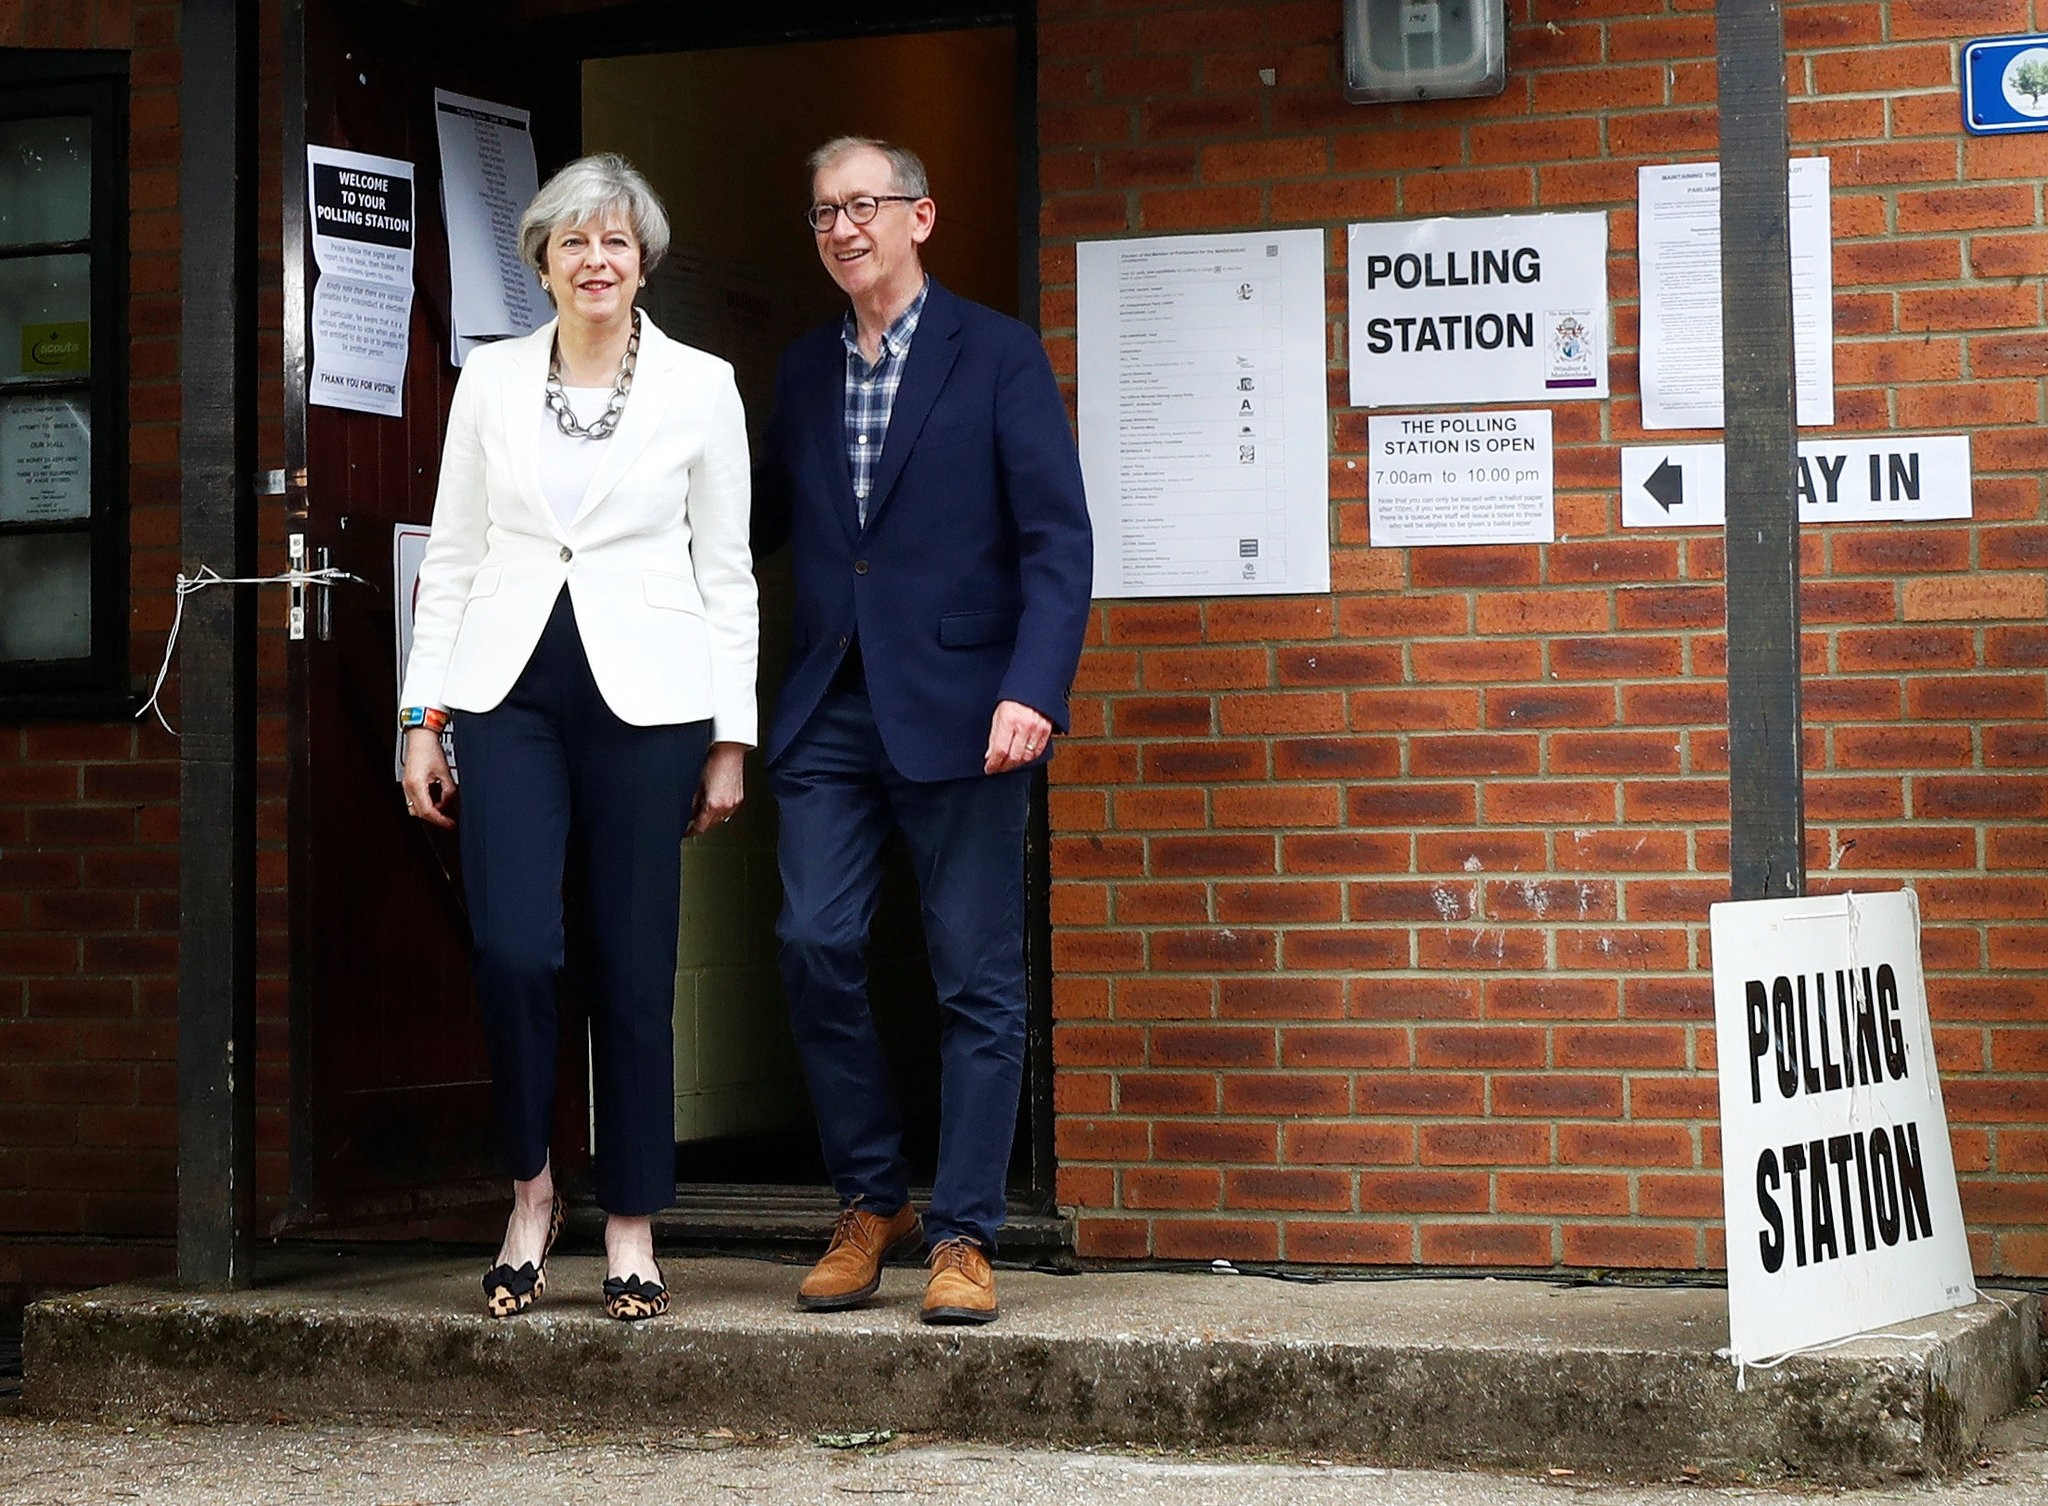 Britain's Primer Minister Theresa May and her husband Philip leave a polling station in Sonning, Britain, June 8, 2017. (Reuters Photo)